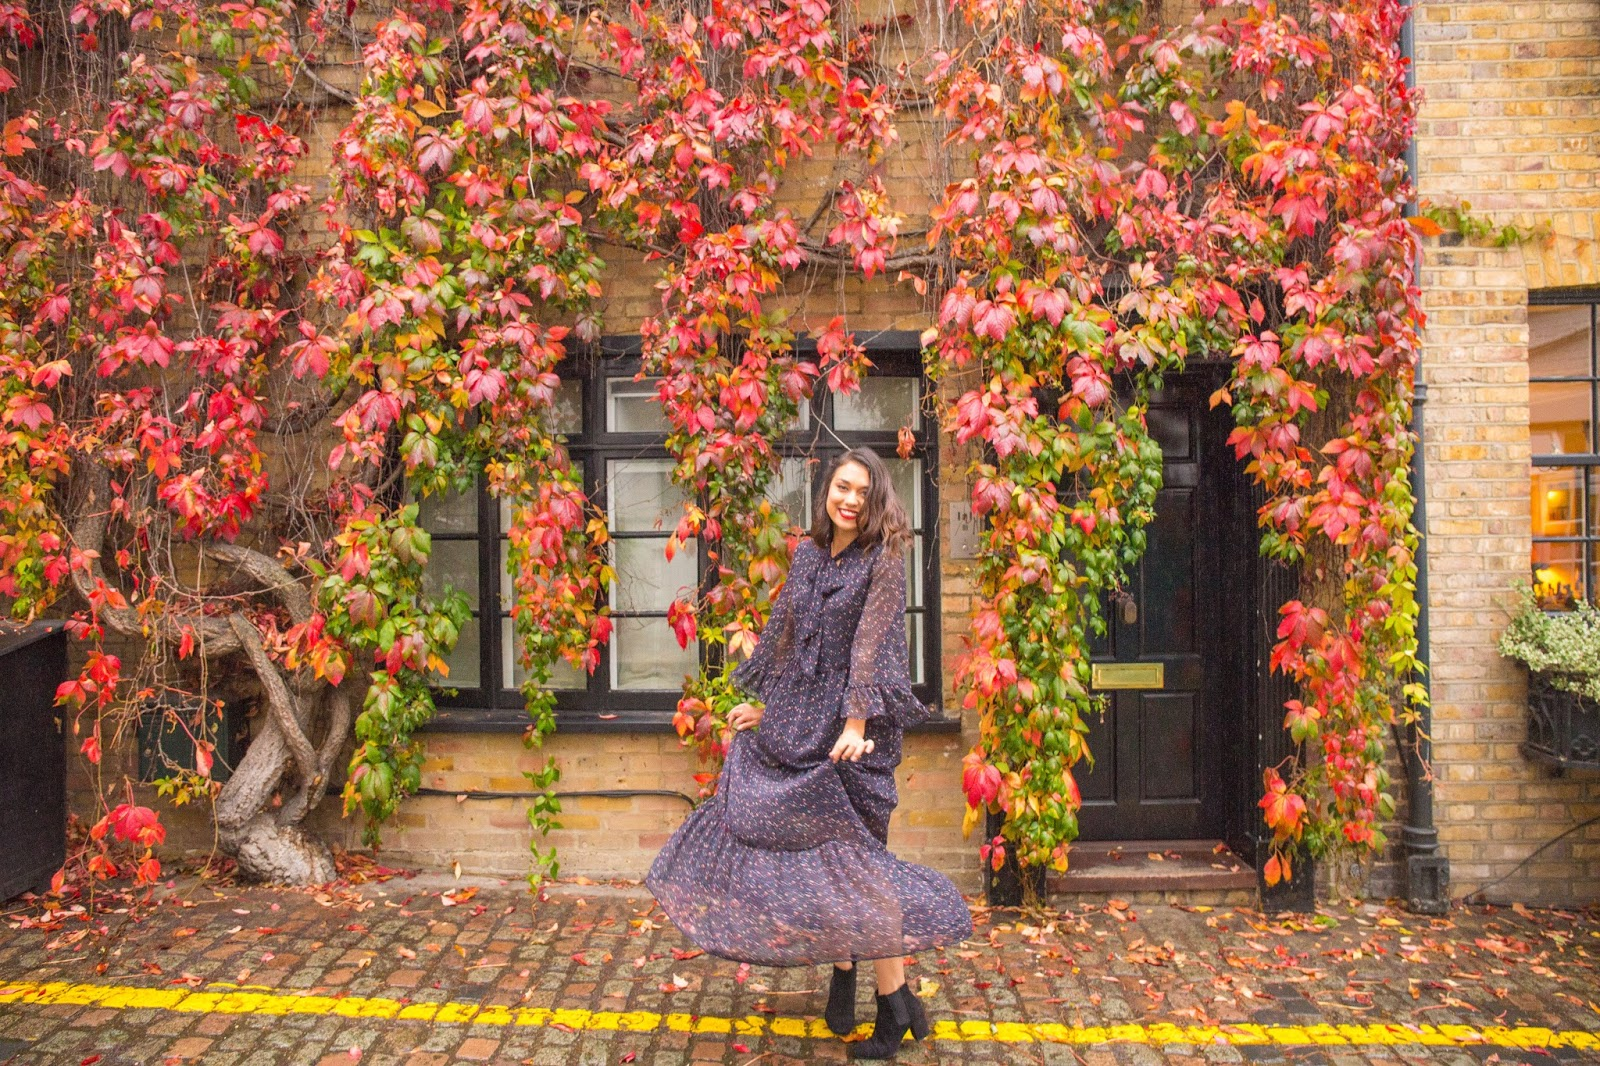 From the book where you might see the beautiful autumn leaves - Autumn Is One Of The Best Times To Explore London The City Is So Beautiful As You Start To See All The Red Oranges And Yellows Of Autumn